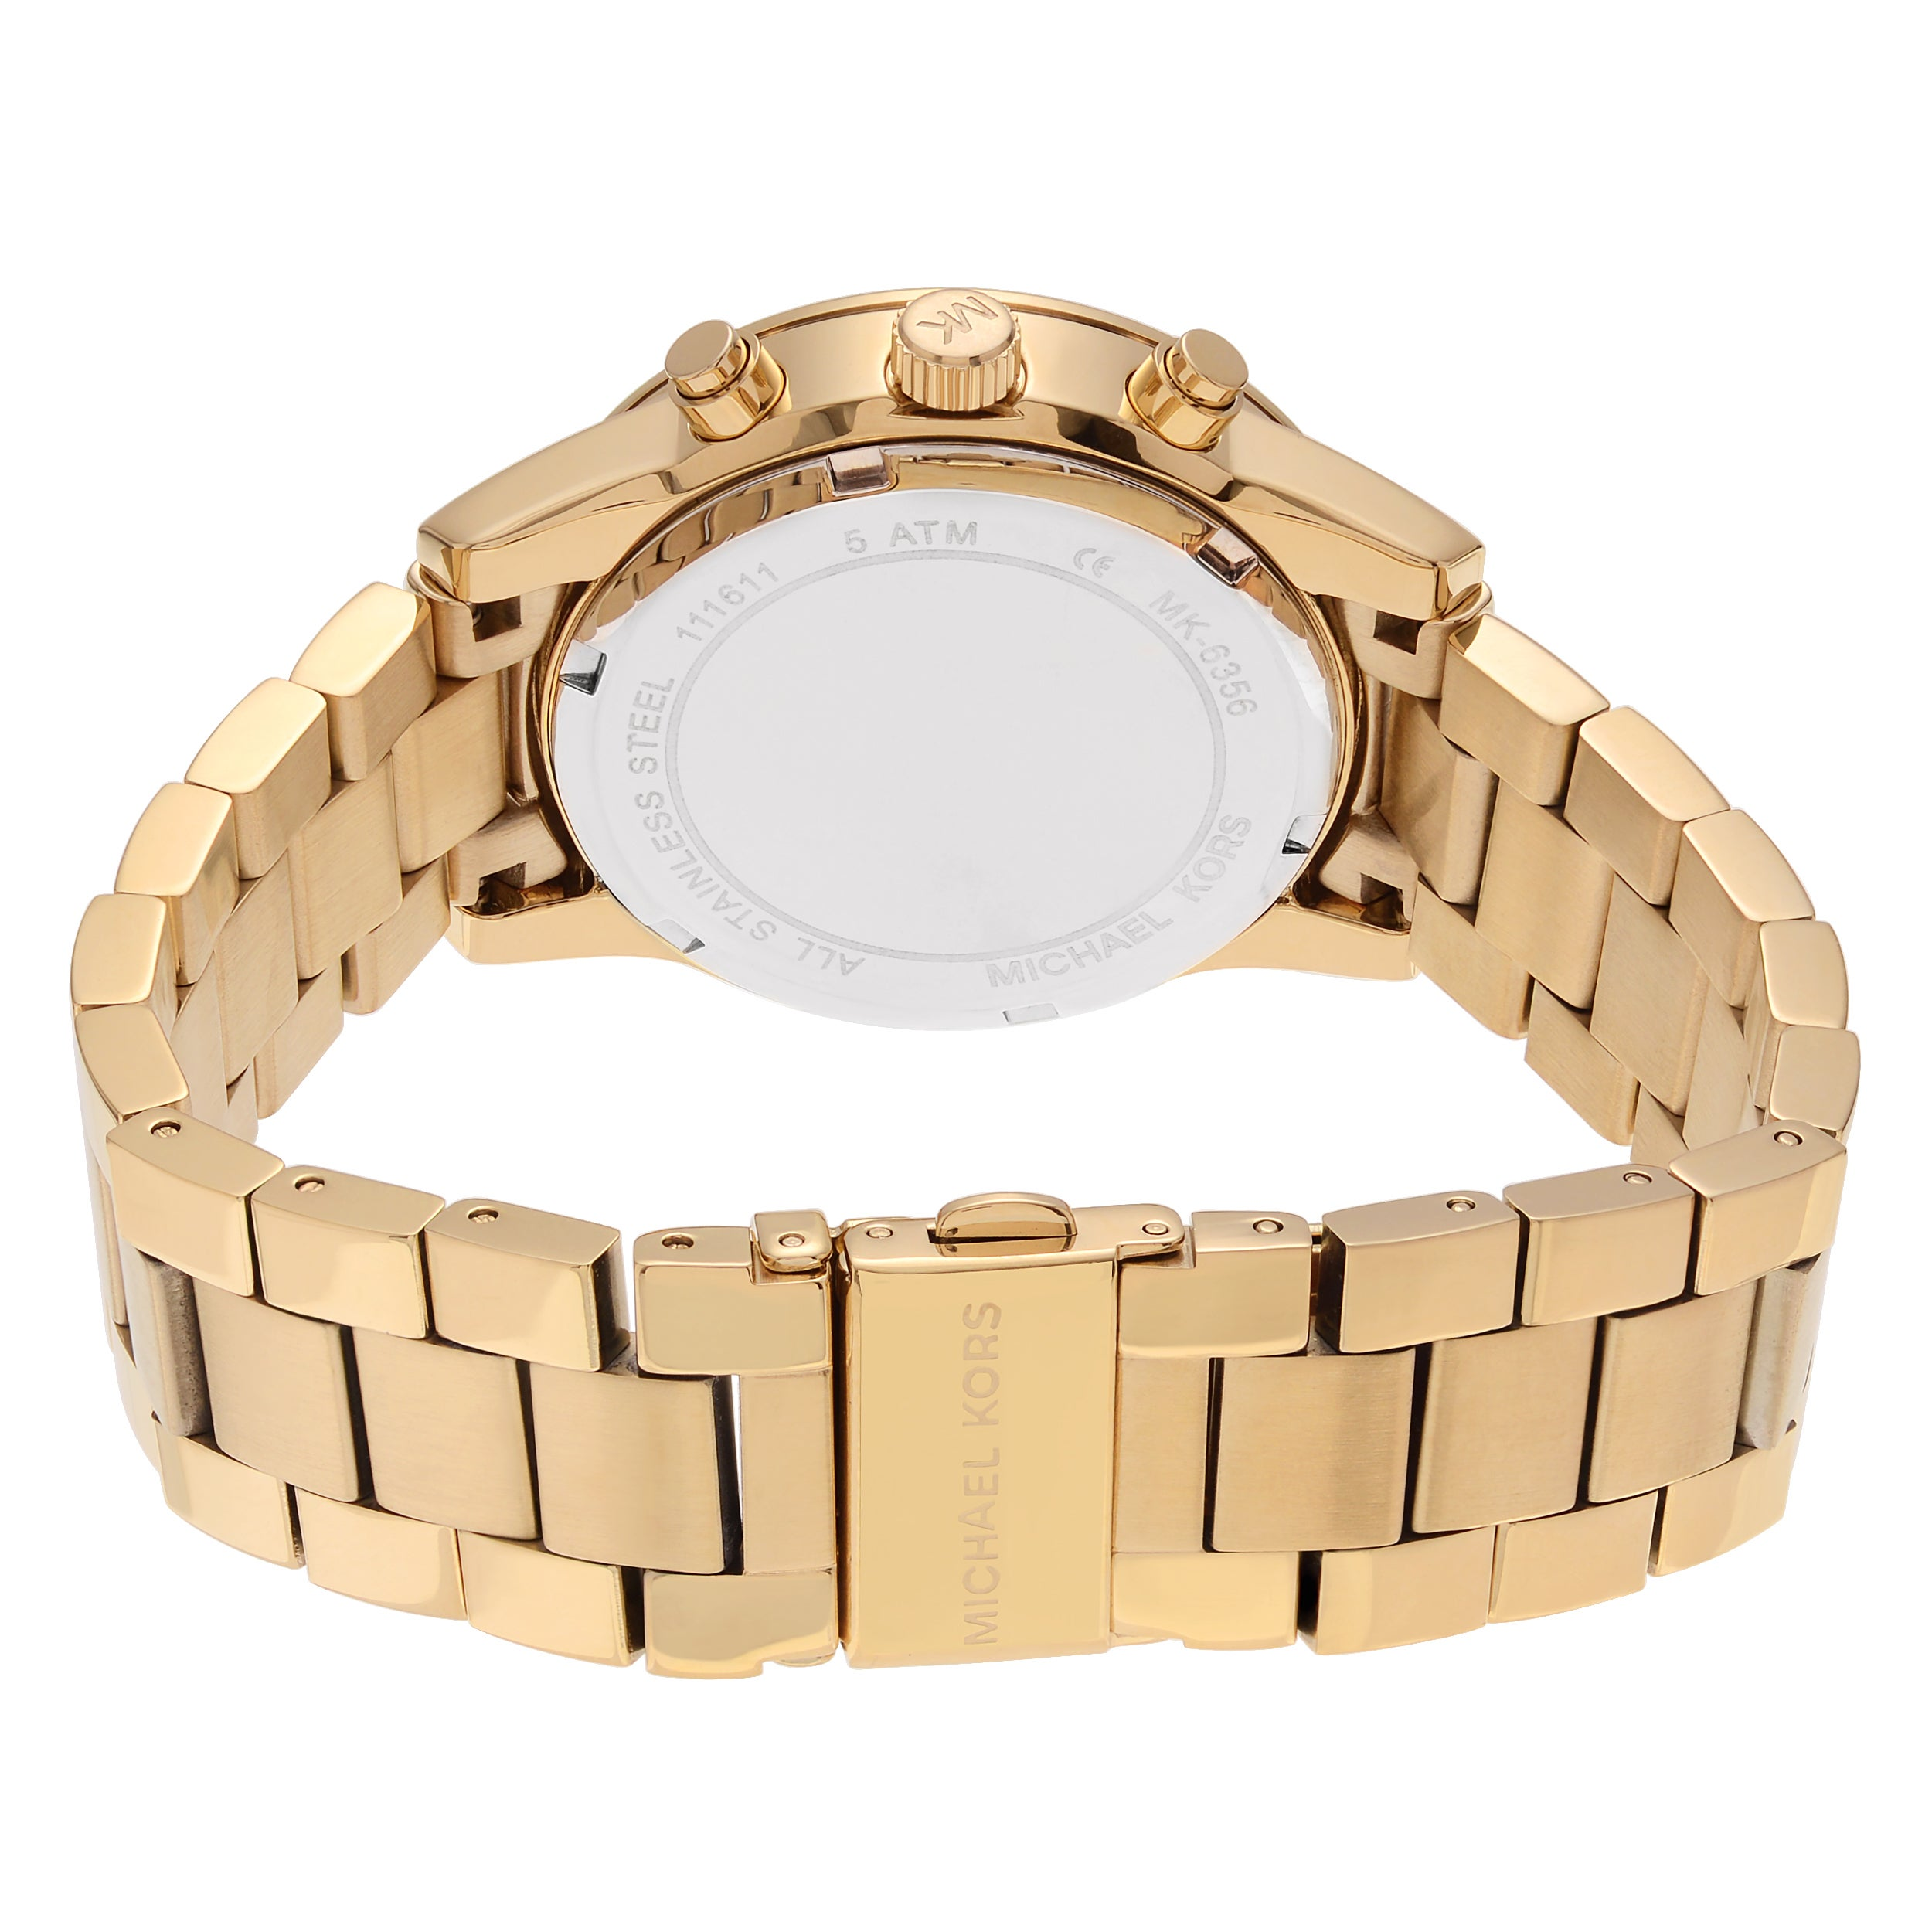 b5e13d6b0 Shop Michael Kors Women's MK6356 'Ritz' Goldtone Stainless Steel Crystal  Pave Chronograph Dial Link Bracelet Watch - Free Shipping Today - Overstock  - ...